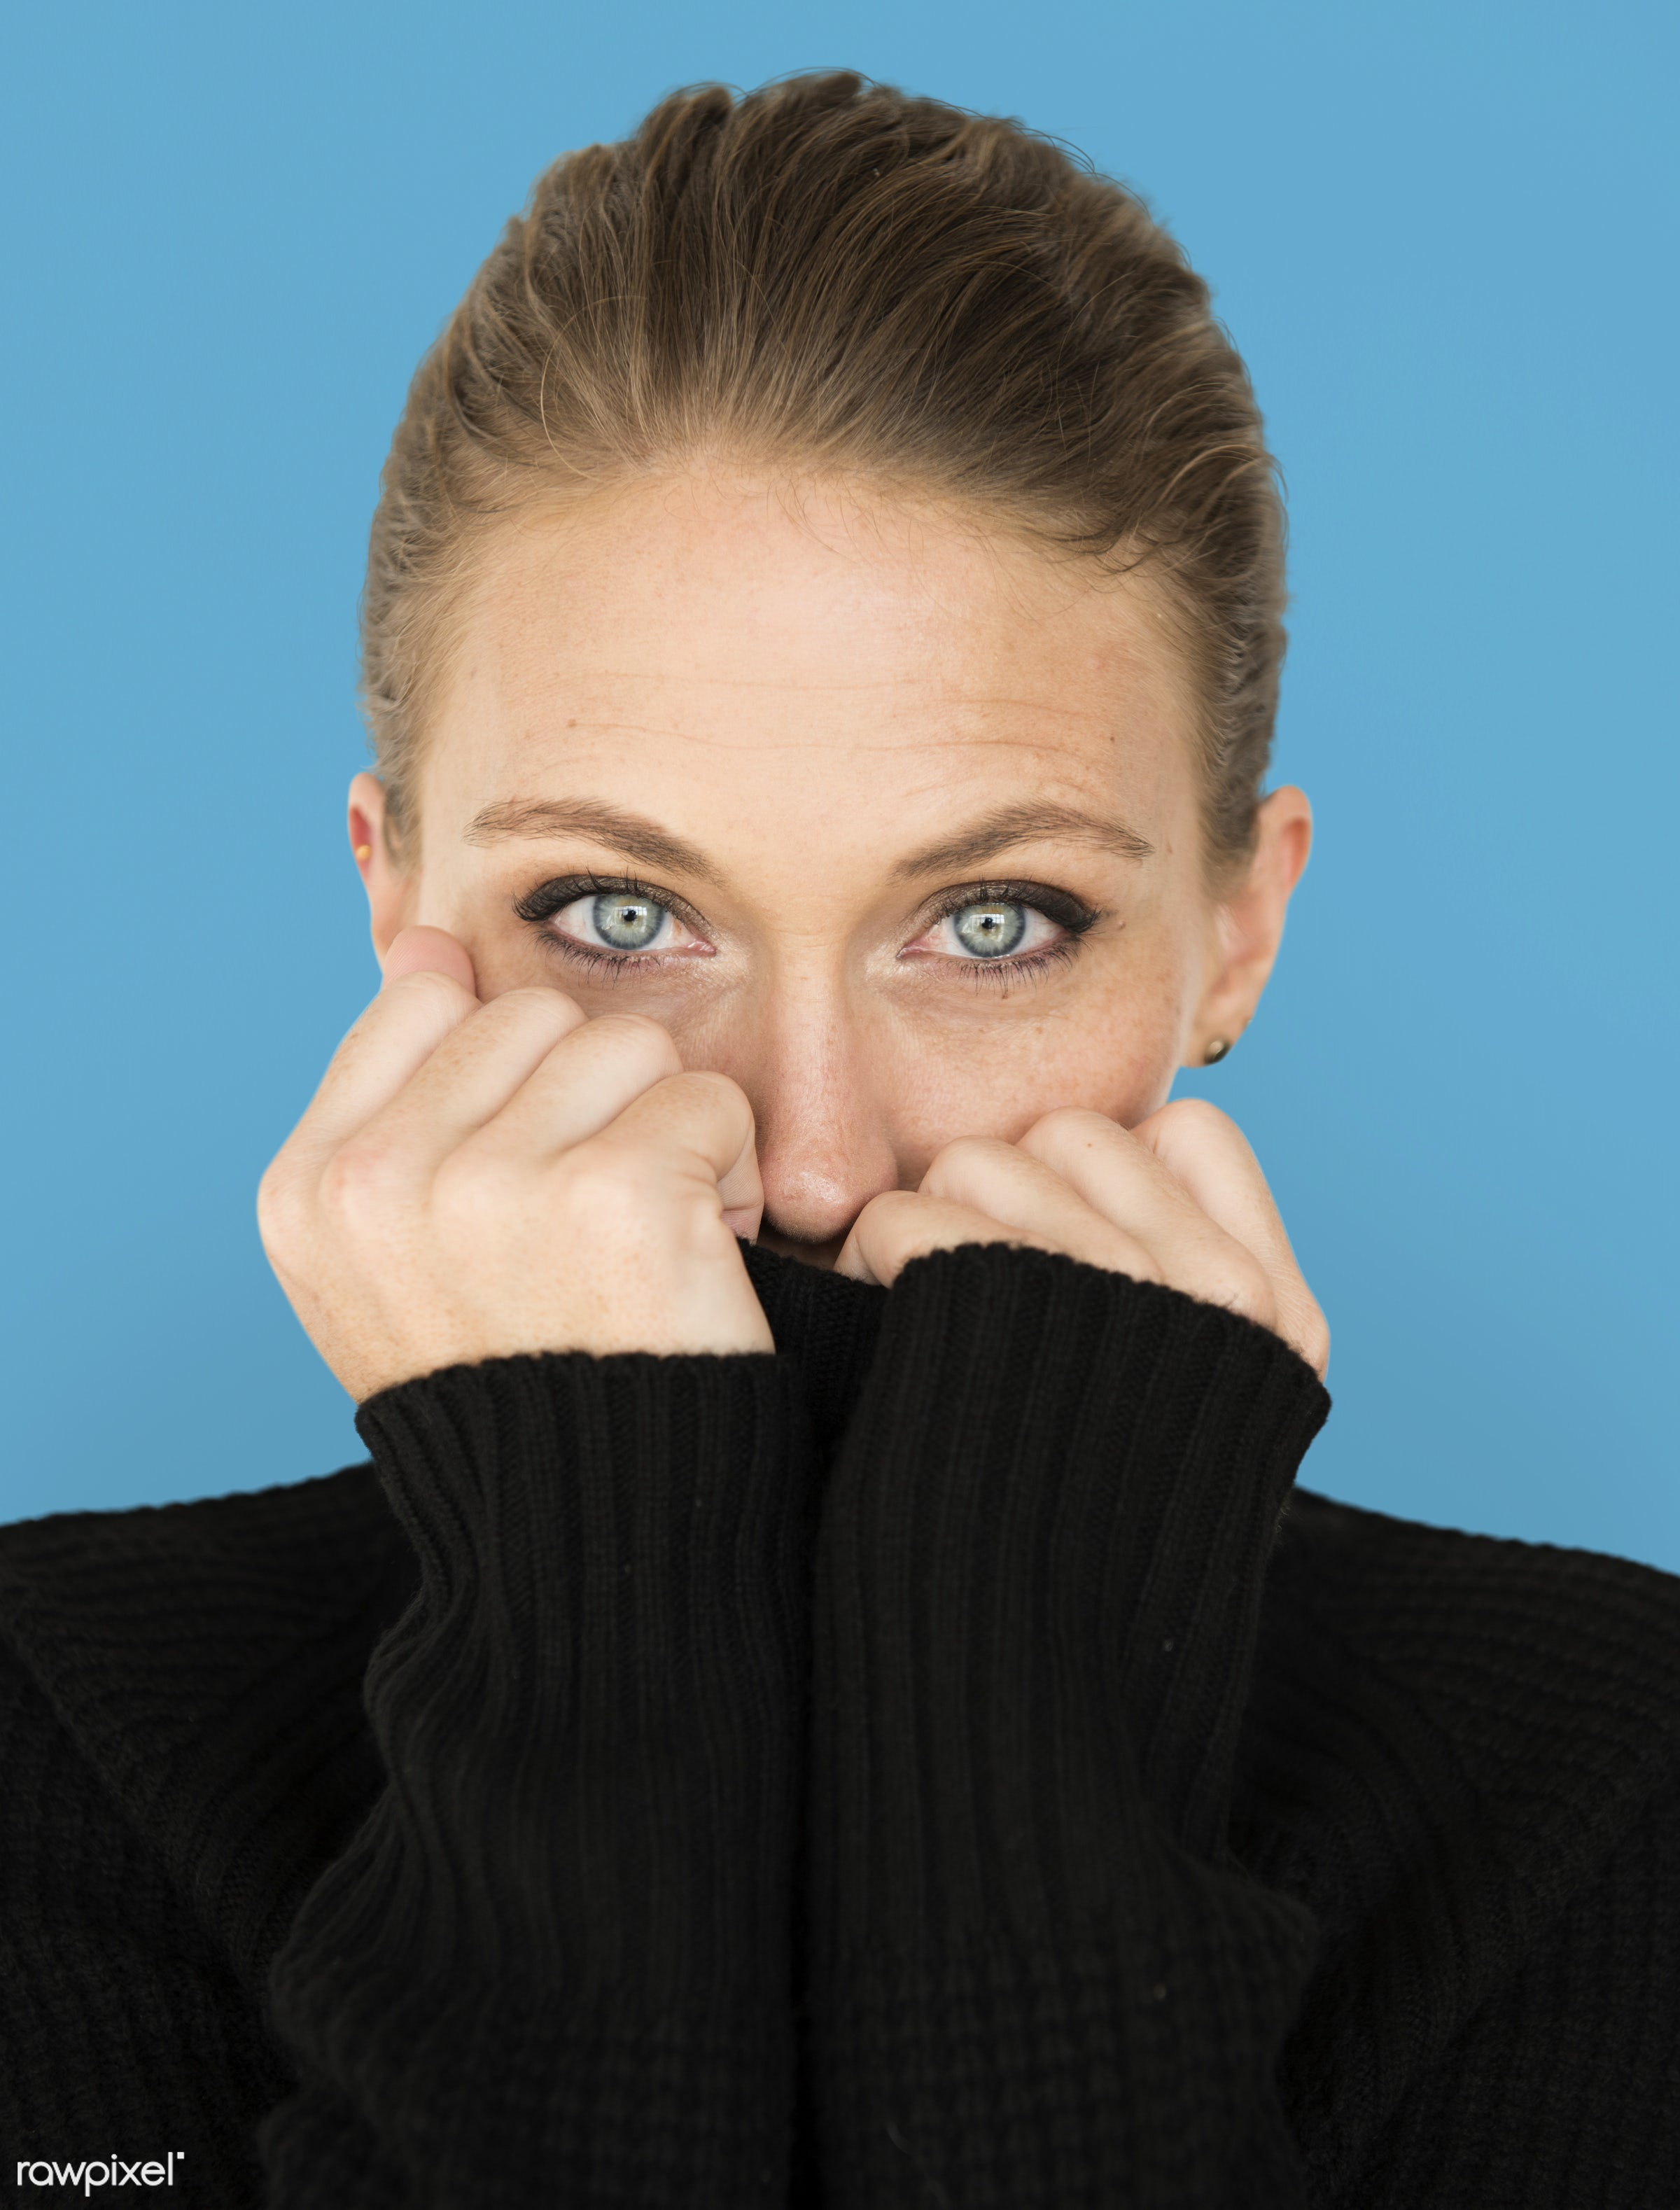 adult, background, beauty, blue, cardigan, casual, charming, cold, cute, emotion, emotional, expression, face, female, girl...